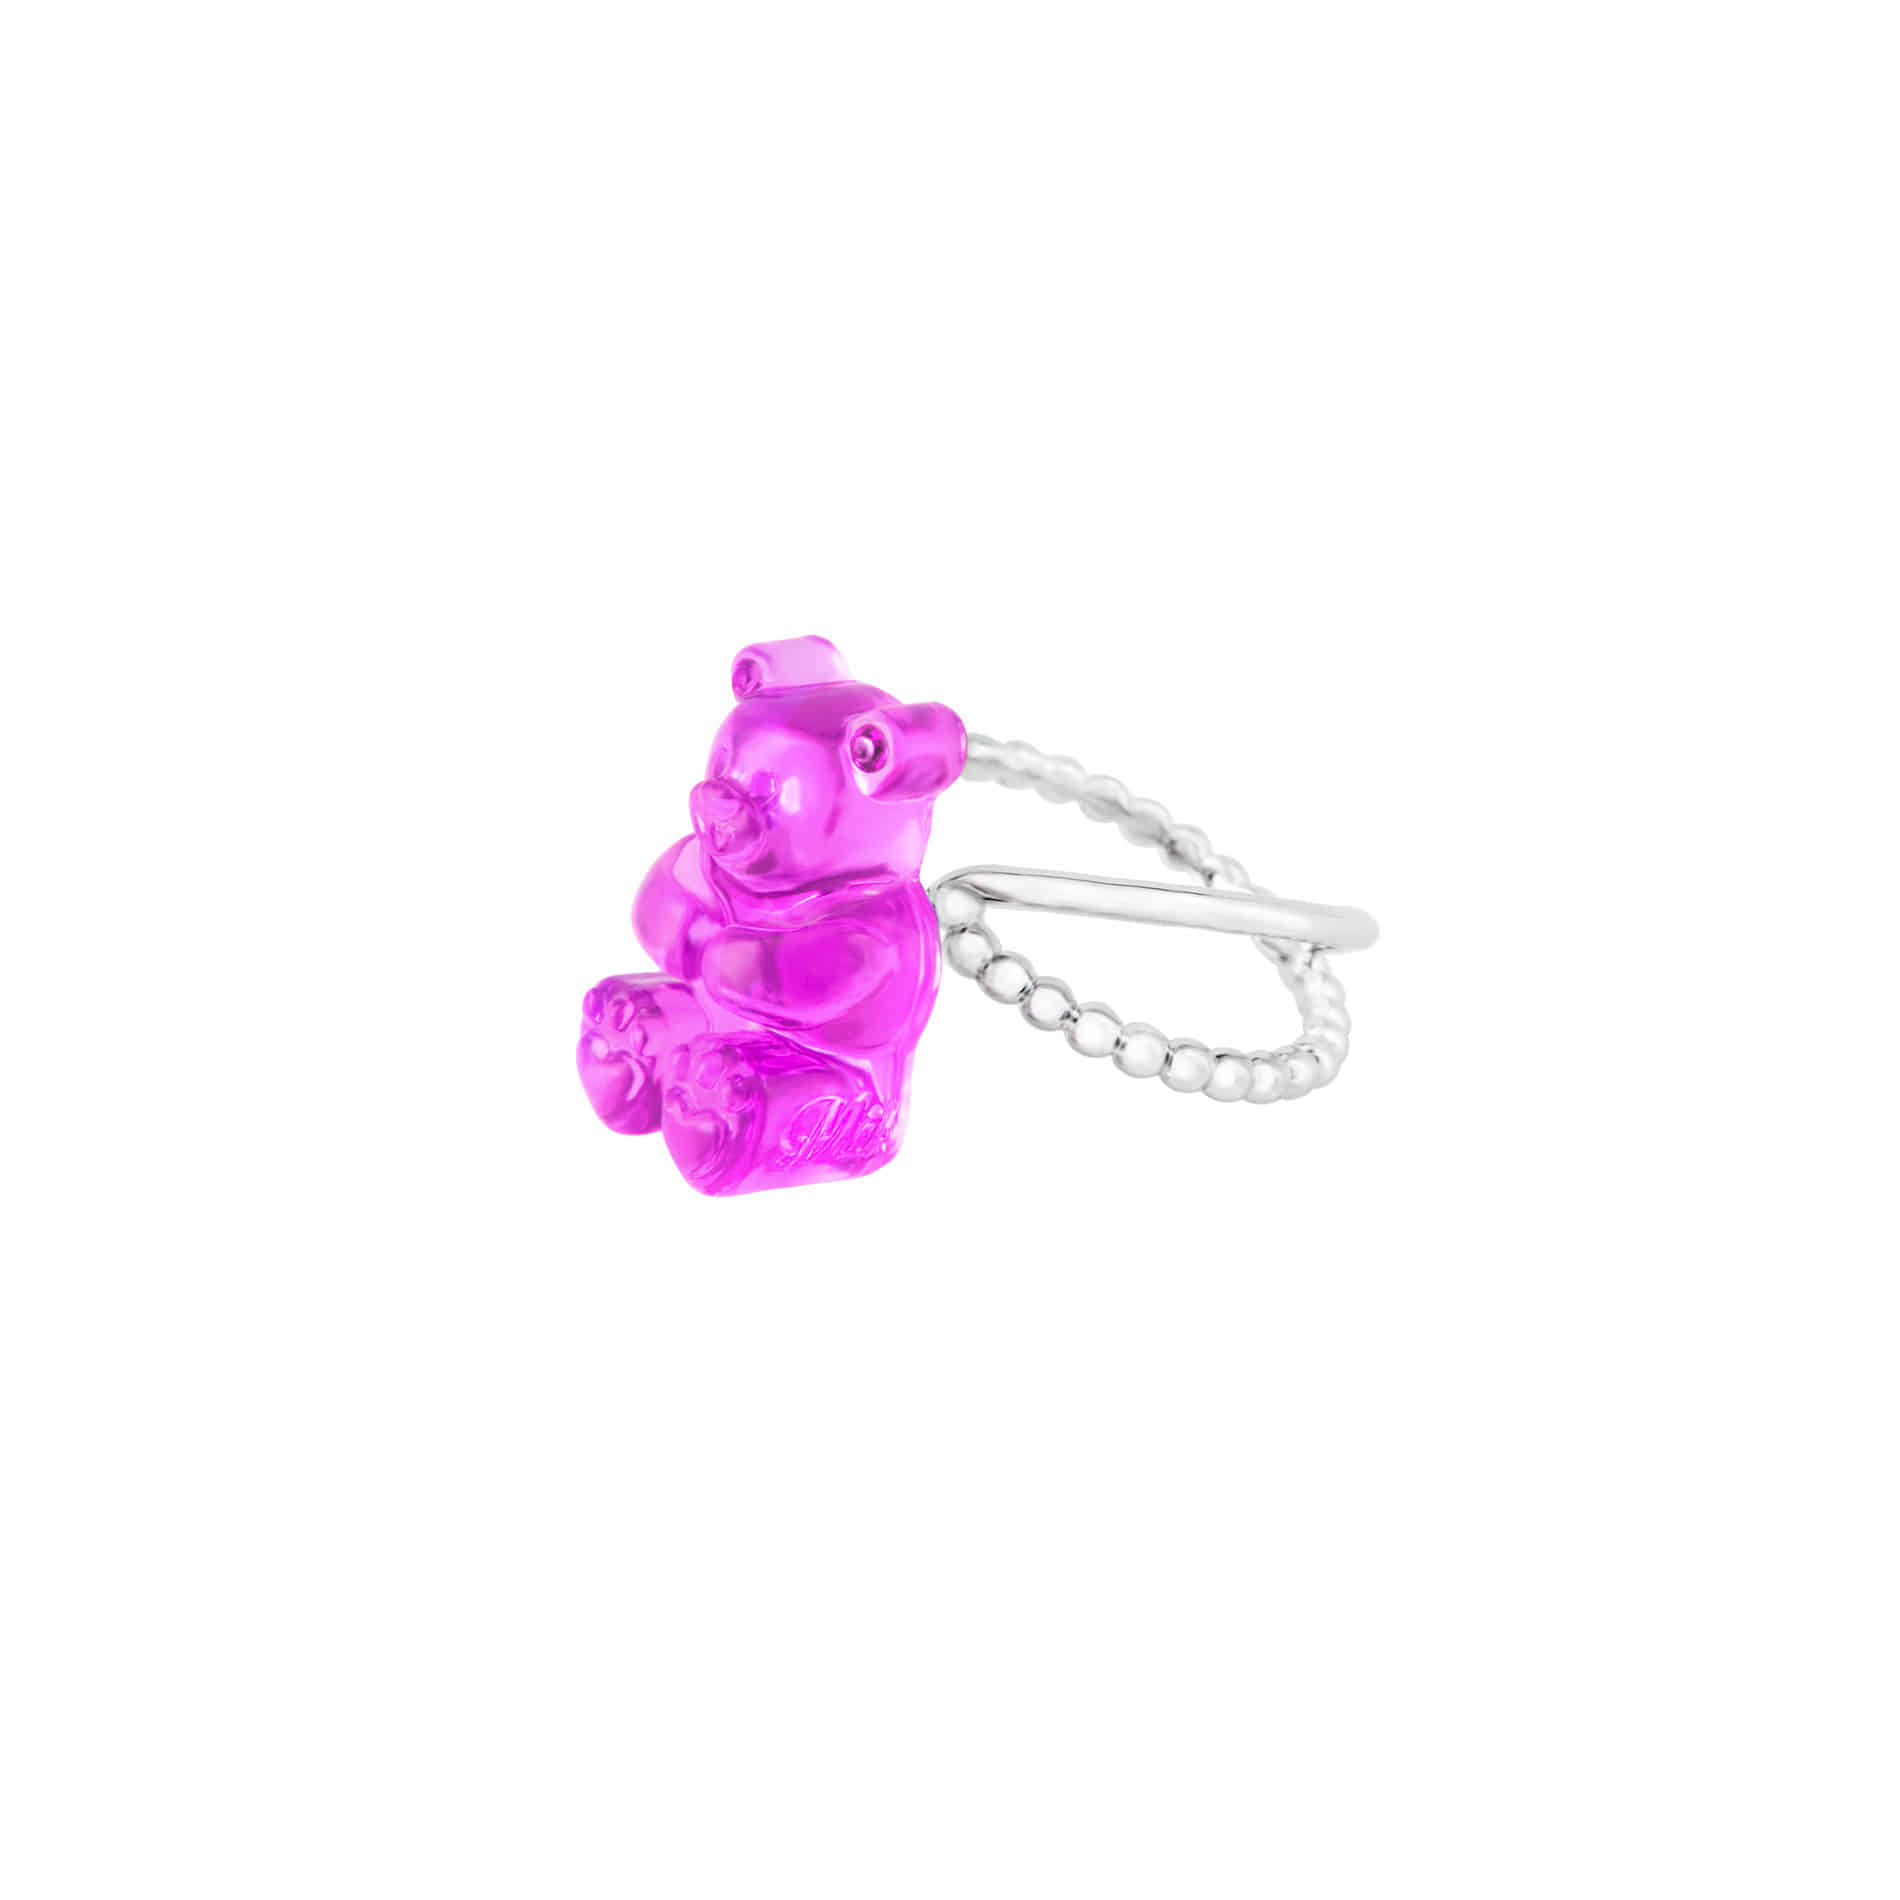 GUMMY BEAR RING (PURPLE)